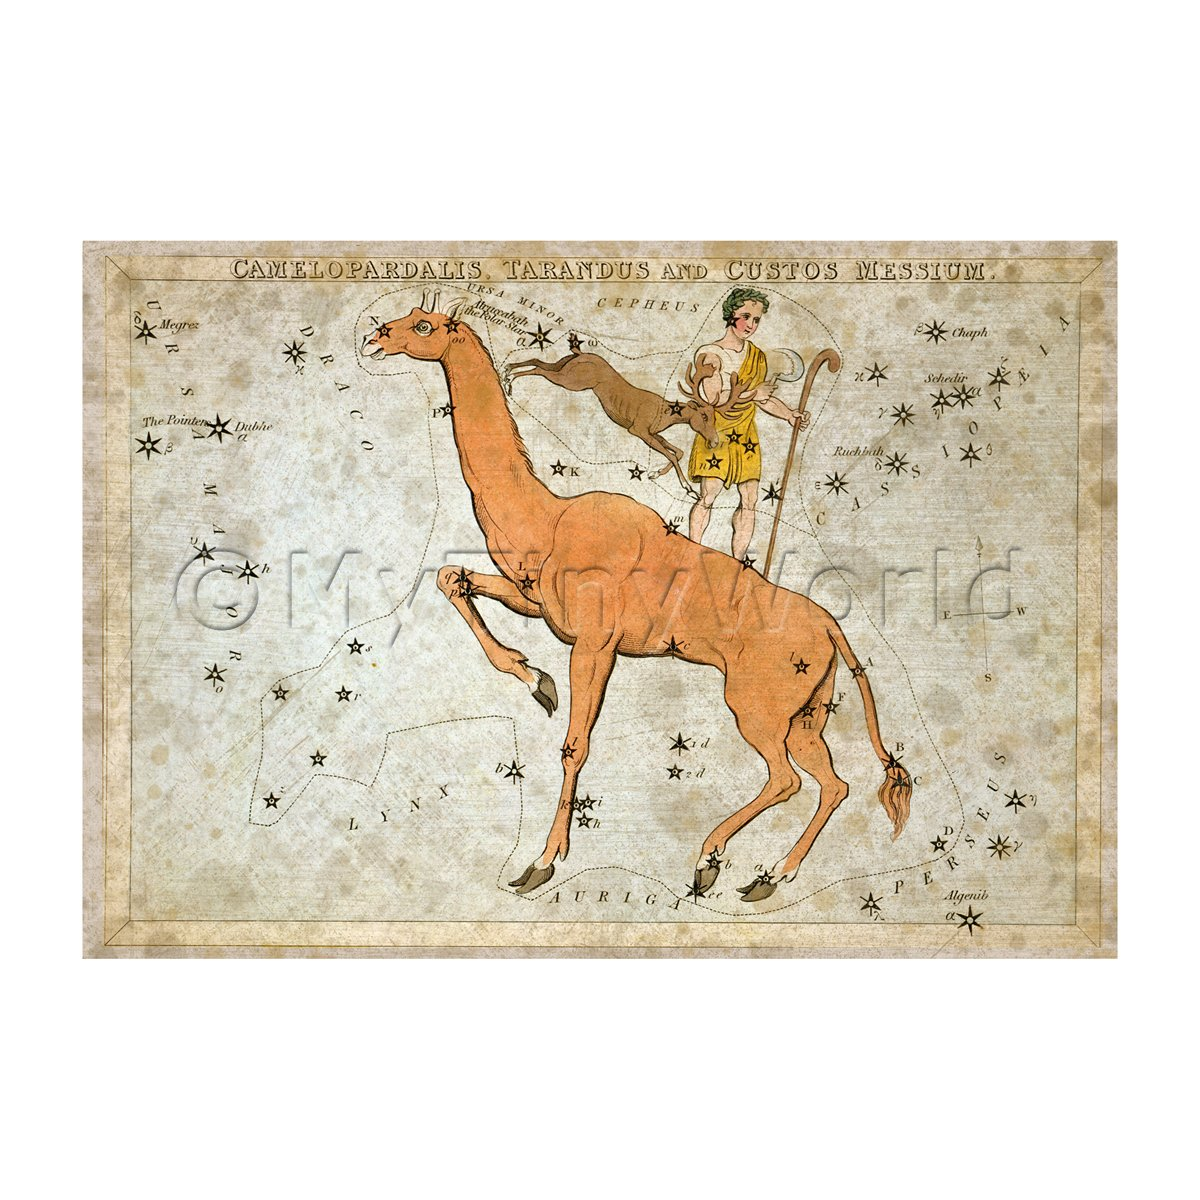 Dolls House Miniature Aged 1820s Star Map Depicting Camelopardalis